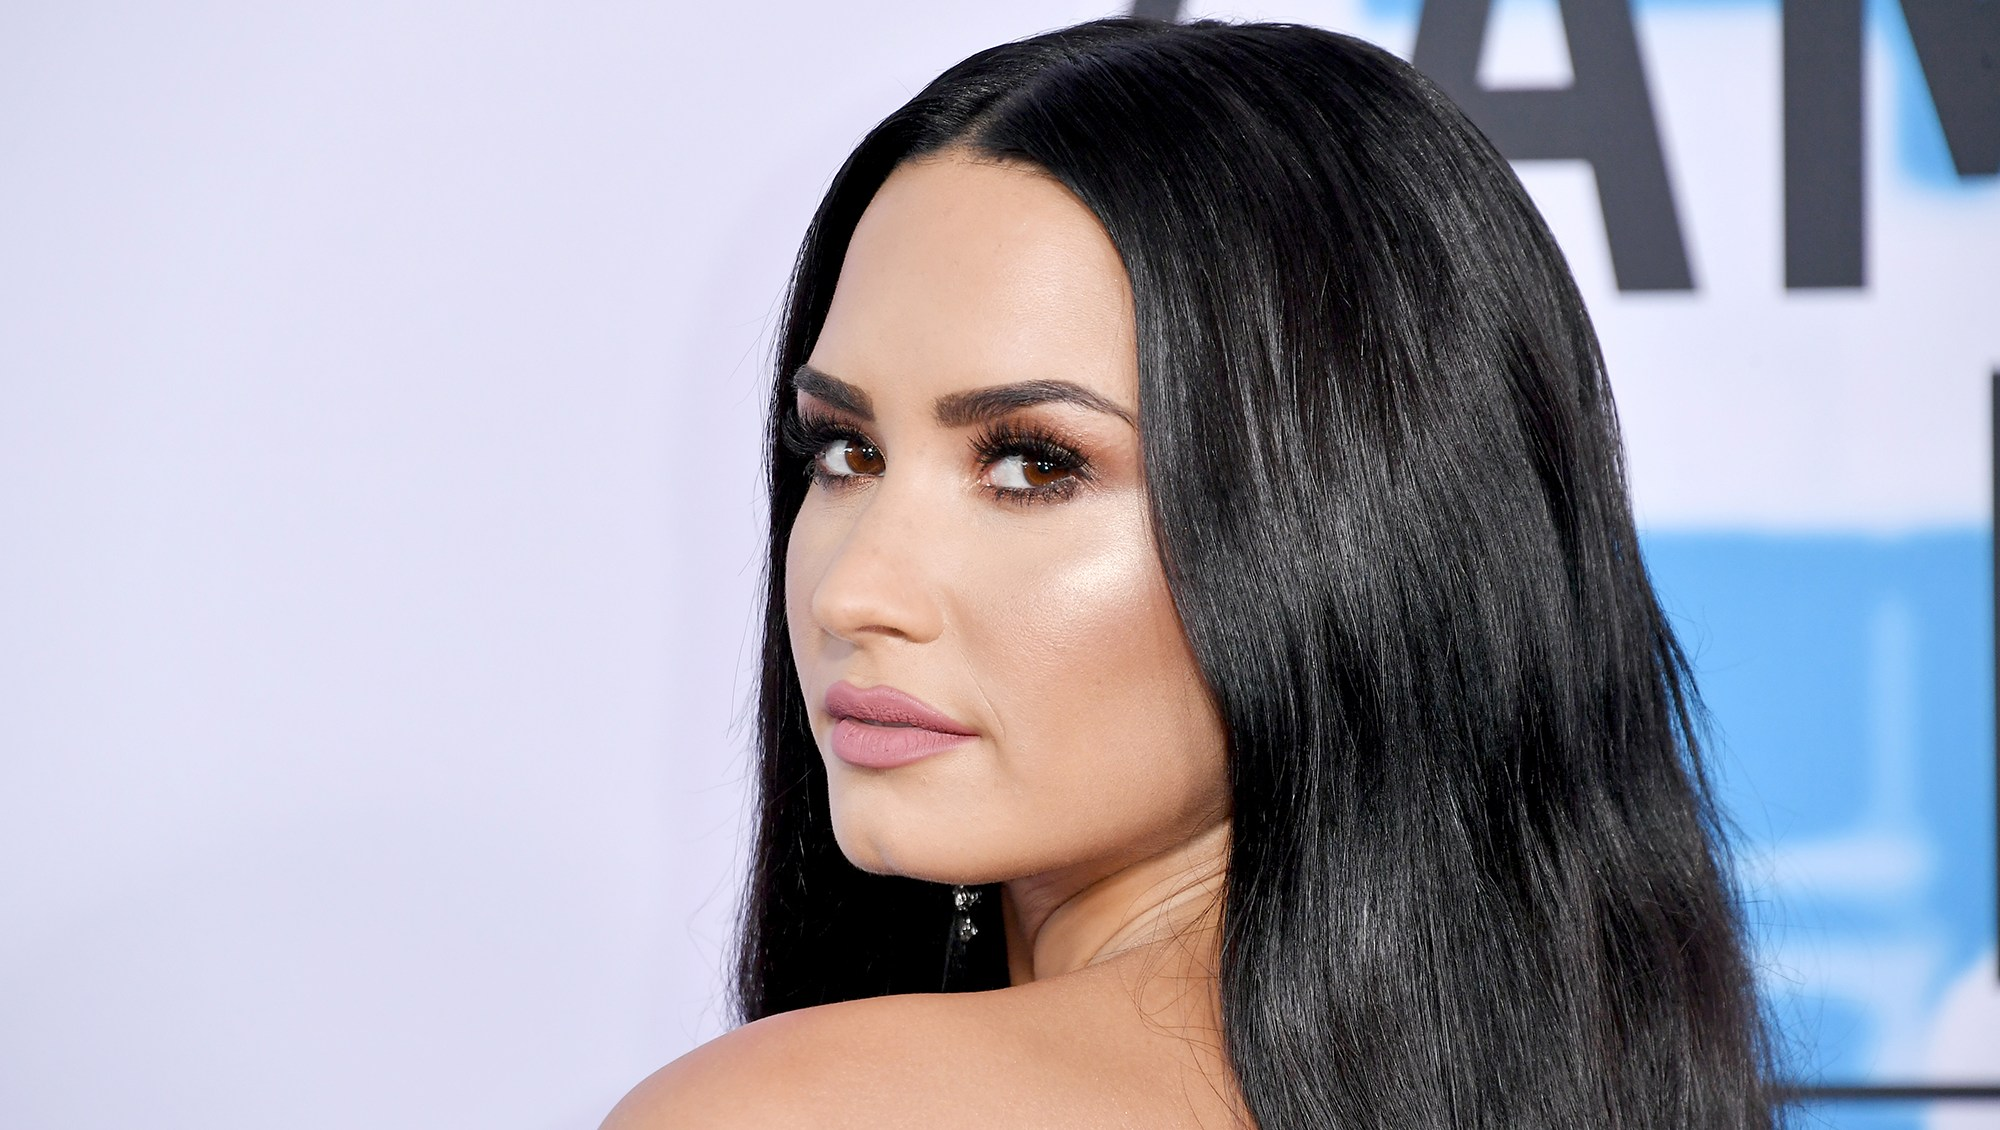 """Demi Lovato Calls Out Body-Shaming Headline: """"I Am More Than My Weight"""""""